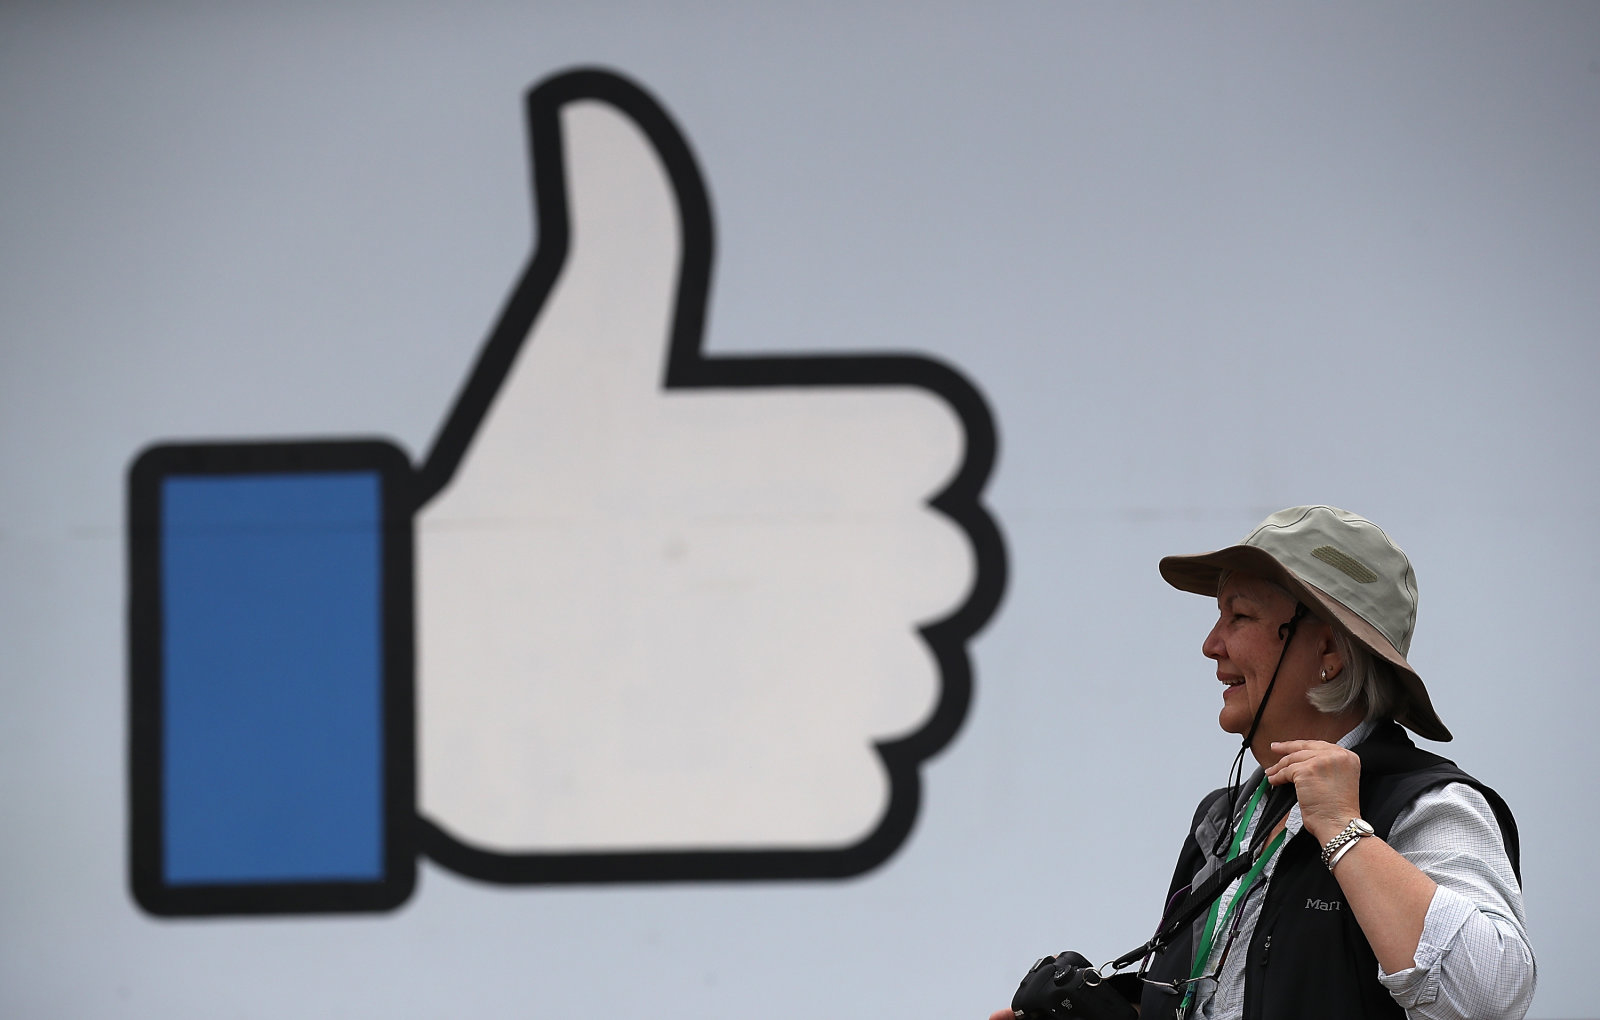 """MENLO PARK, CA - APRIL 05:  A sign is posted outside of Facebook headquarters on April 5, 2018 in Menlo Park, California. Protesters with the activist group """"Raging Grannies"""" staged a pdemonstration outside of Facebook headquaters calling for better consumer protection and online privacy in the wake of Cambridge Analytica's unauthorized access to up to 87 million Facebook users' data.  (Photo by Justin Sullivan/Getty Images)"""